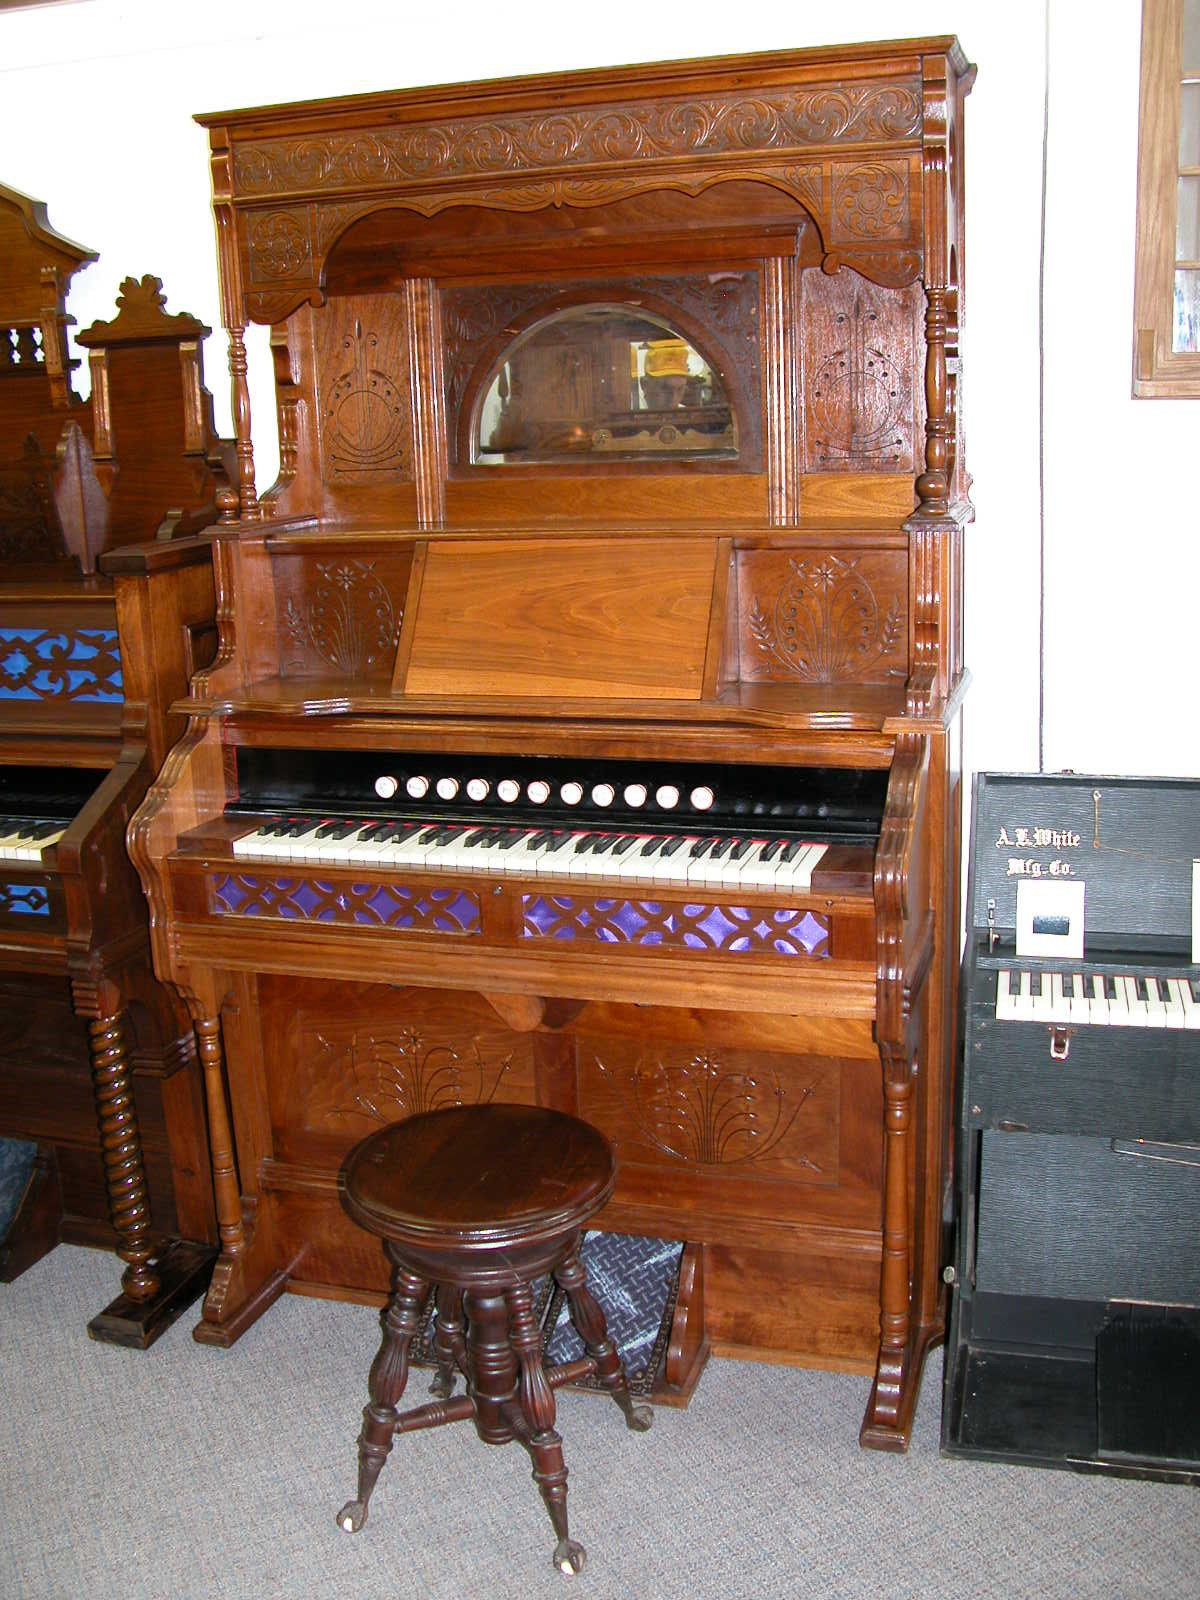 1899 Story & Clark Organ Co. I.D. No. #52